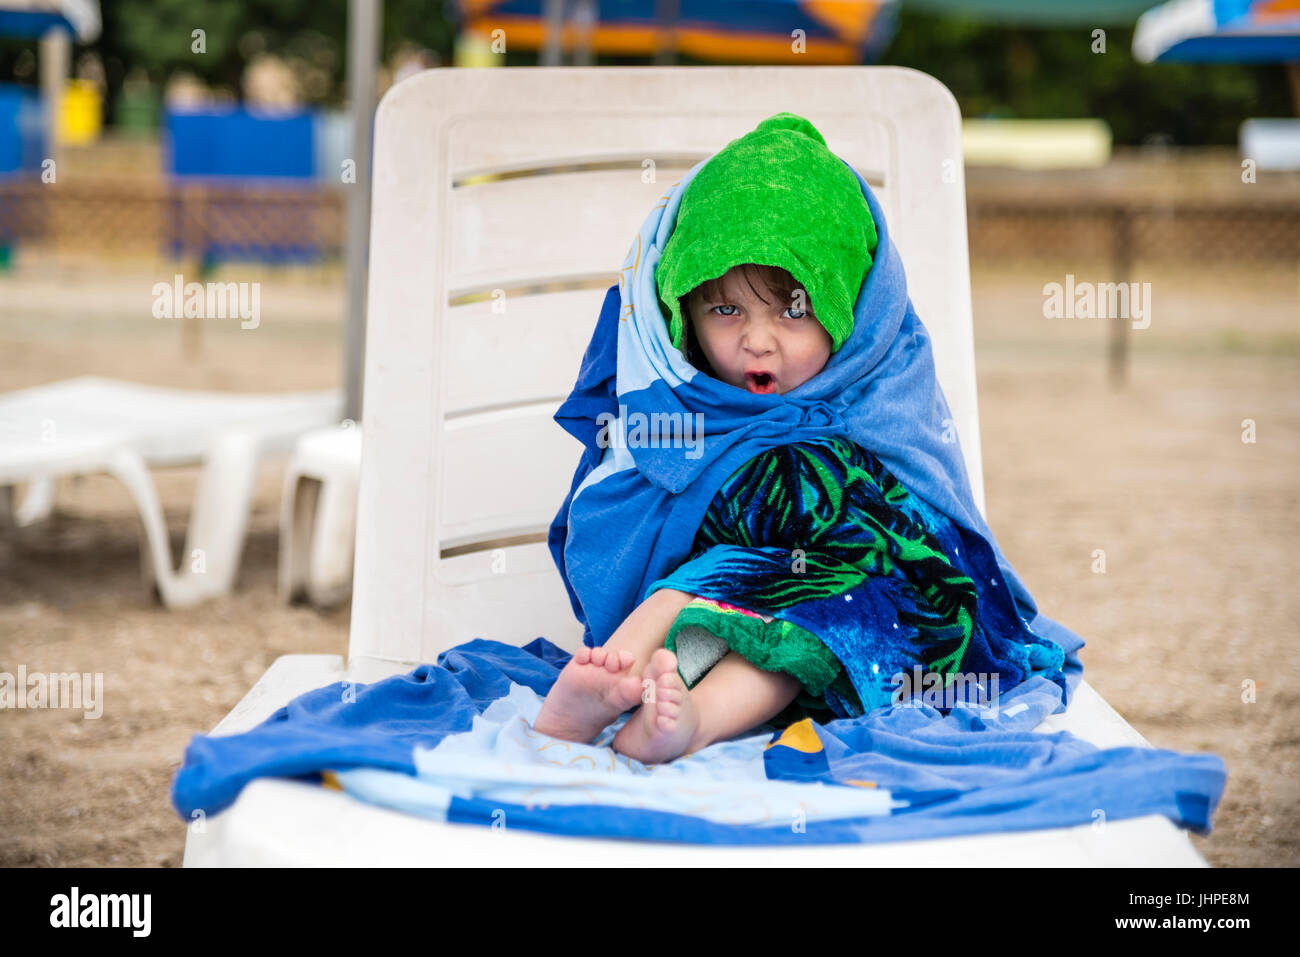 The little girl wrapped in towels for warming, emotions of the face - Stock Image